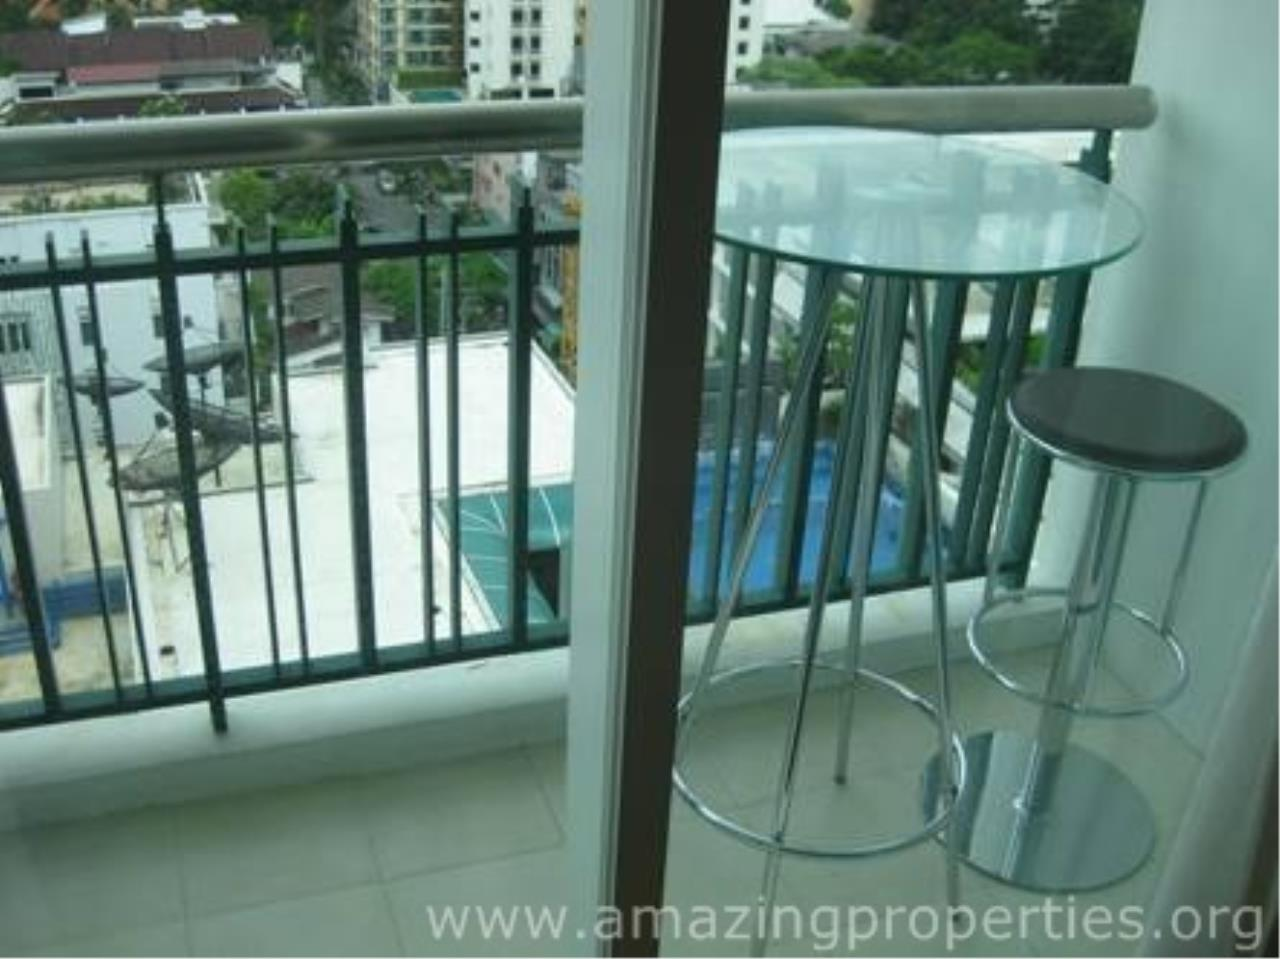 Amazing Properties Agency's 1 bedroom Apartment for rent 5